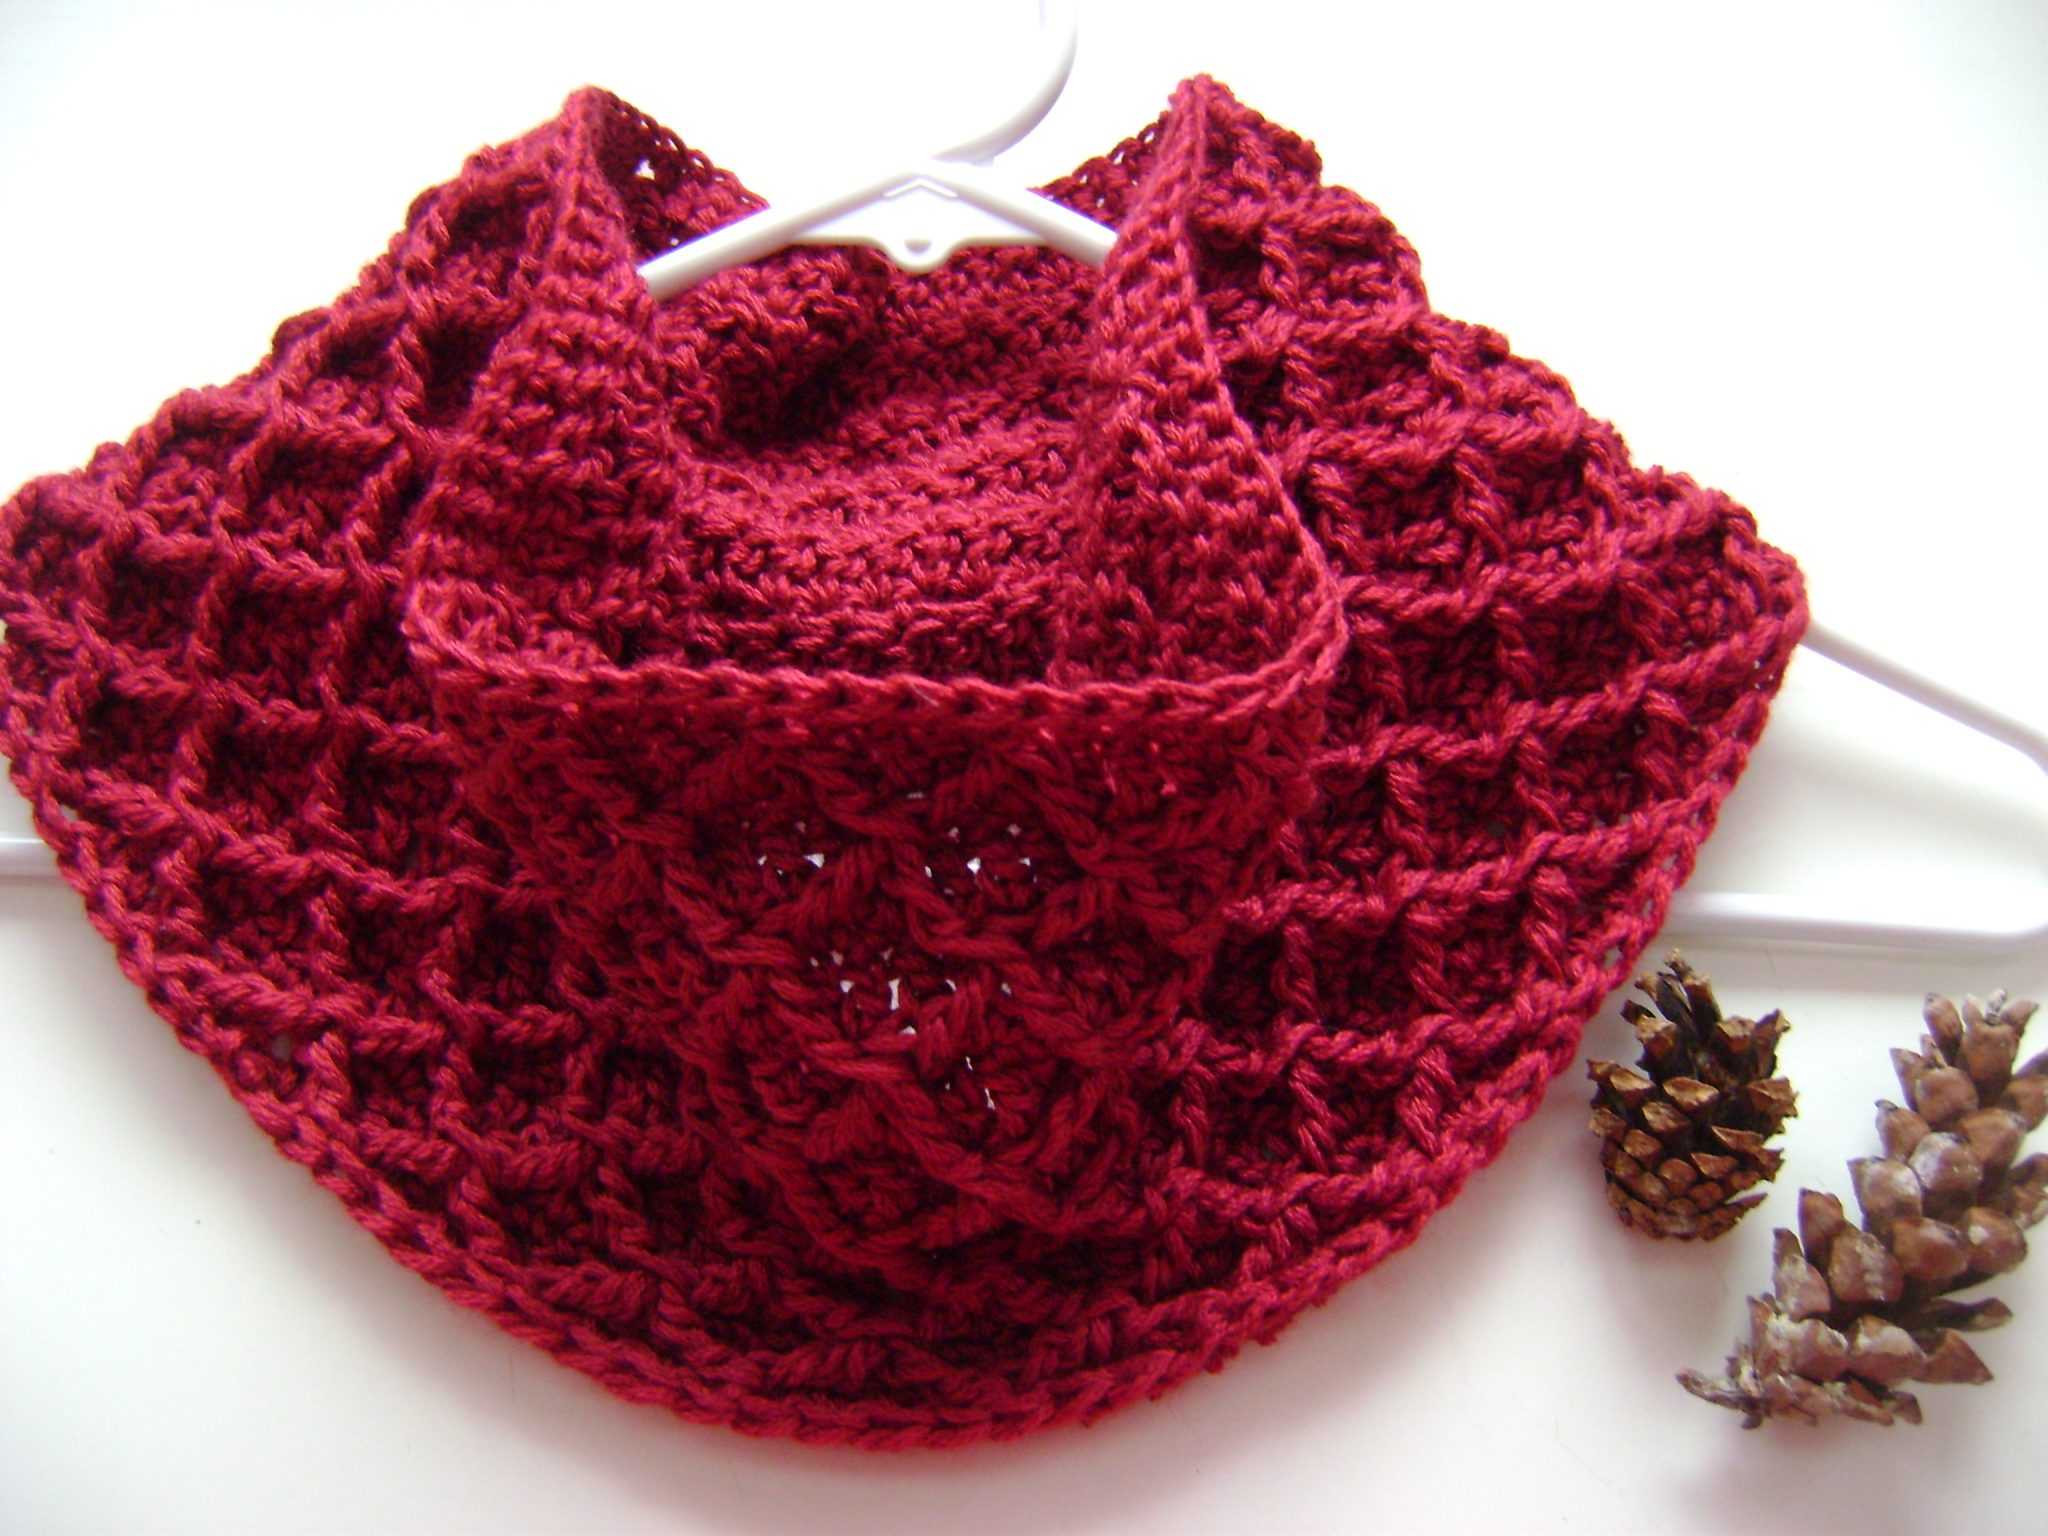 Crochet Patterns Intermediate : free crochet cowl pattern diamonds cables winter scarf